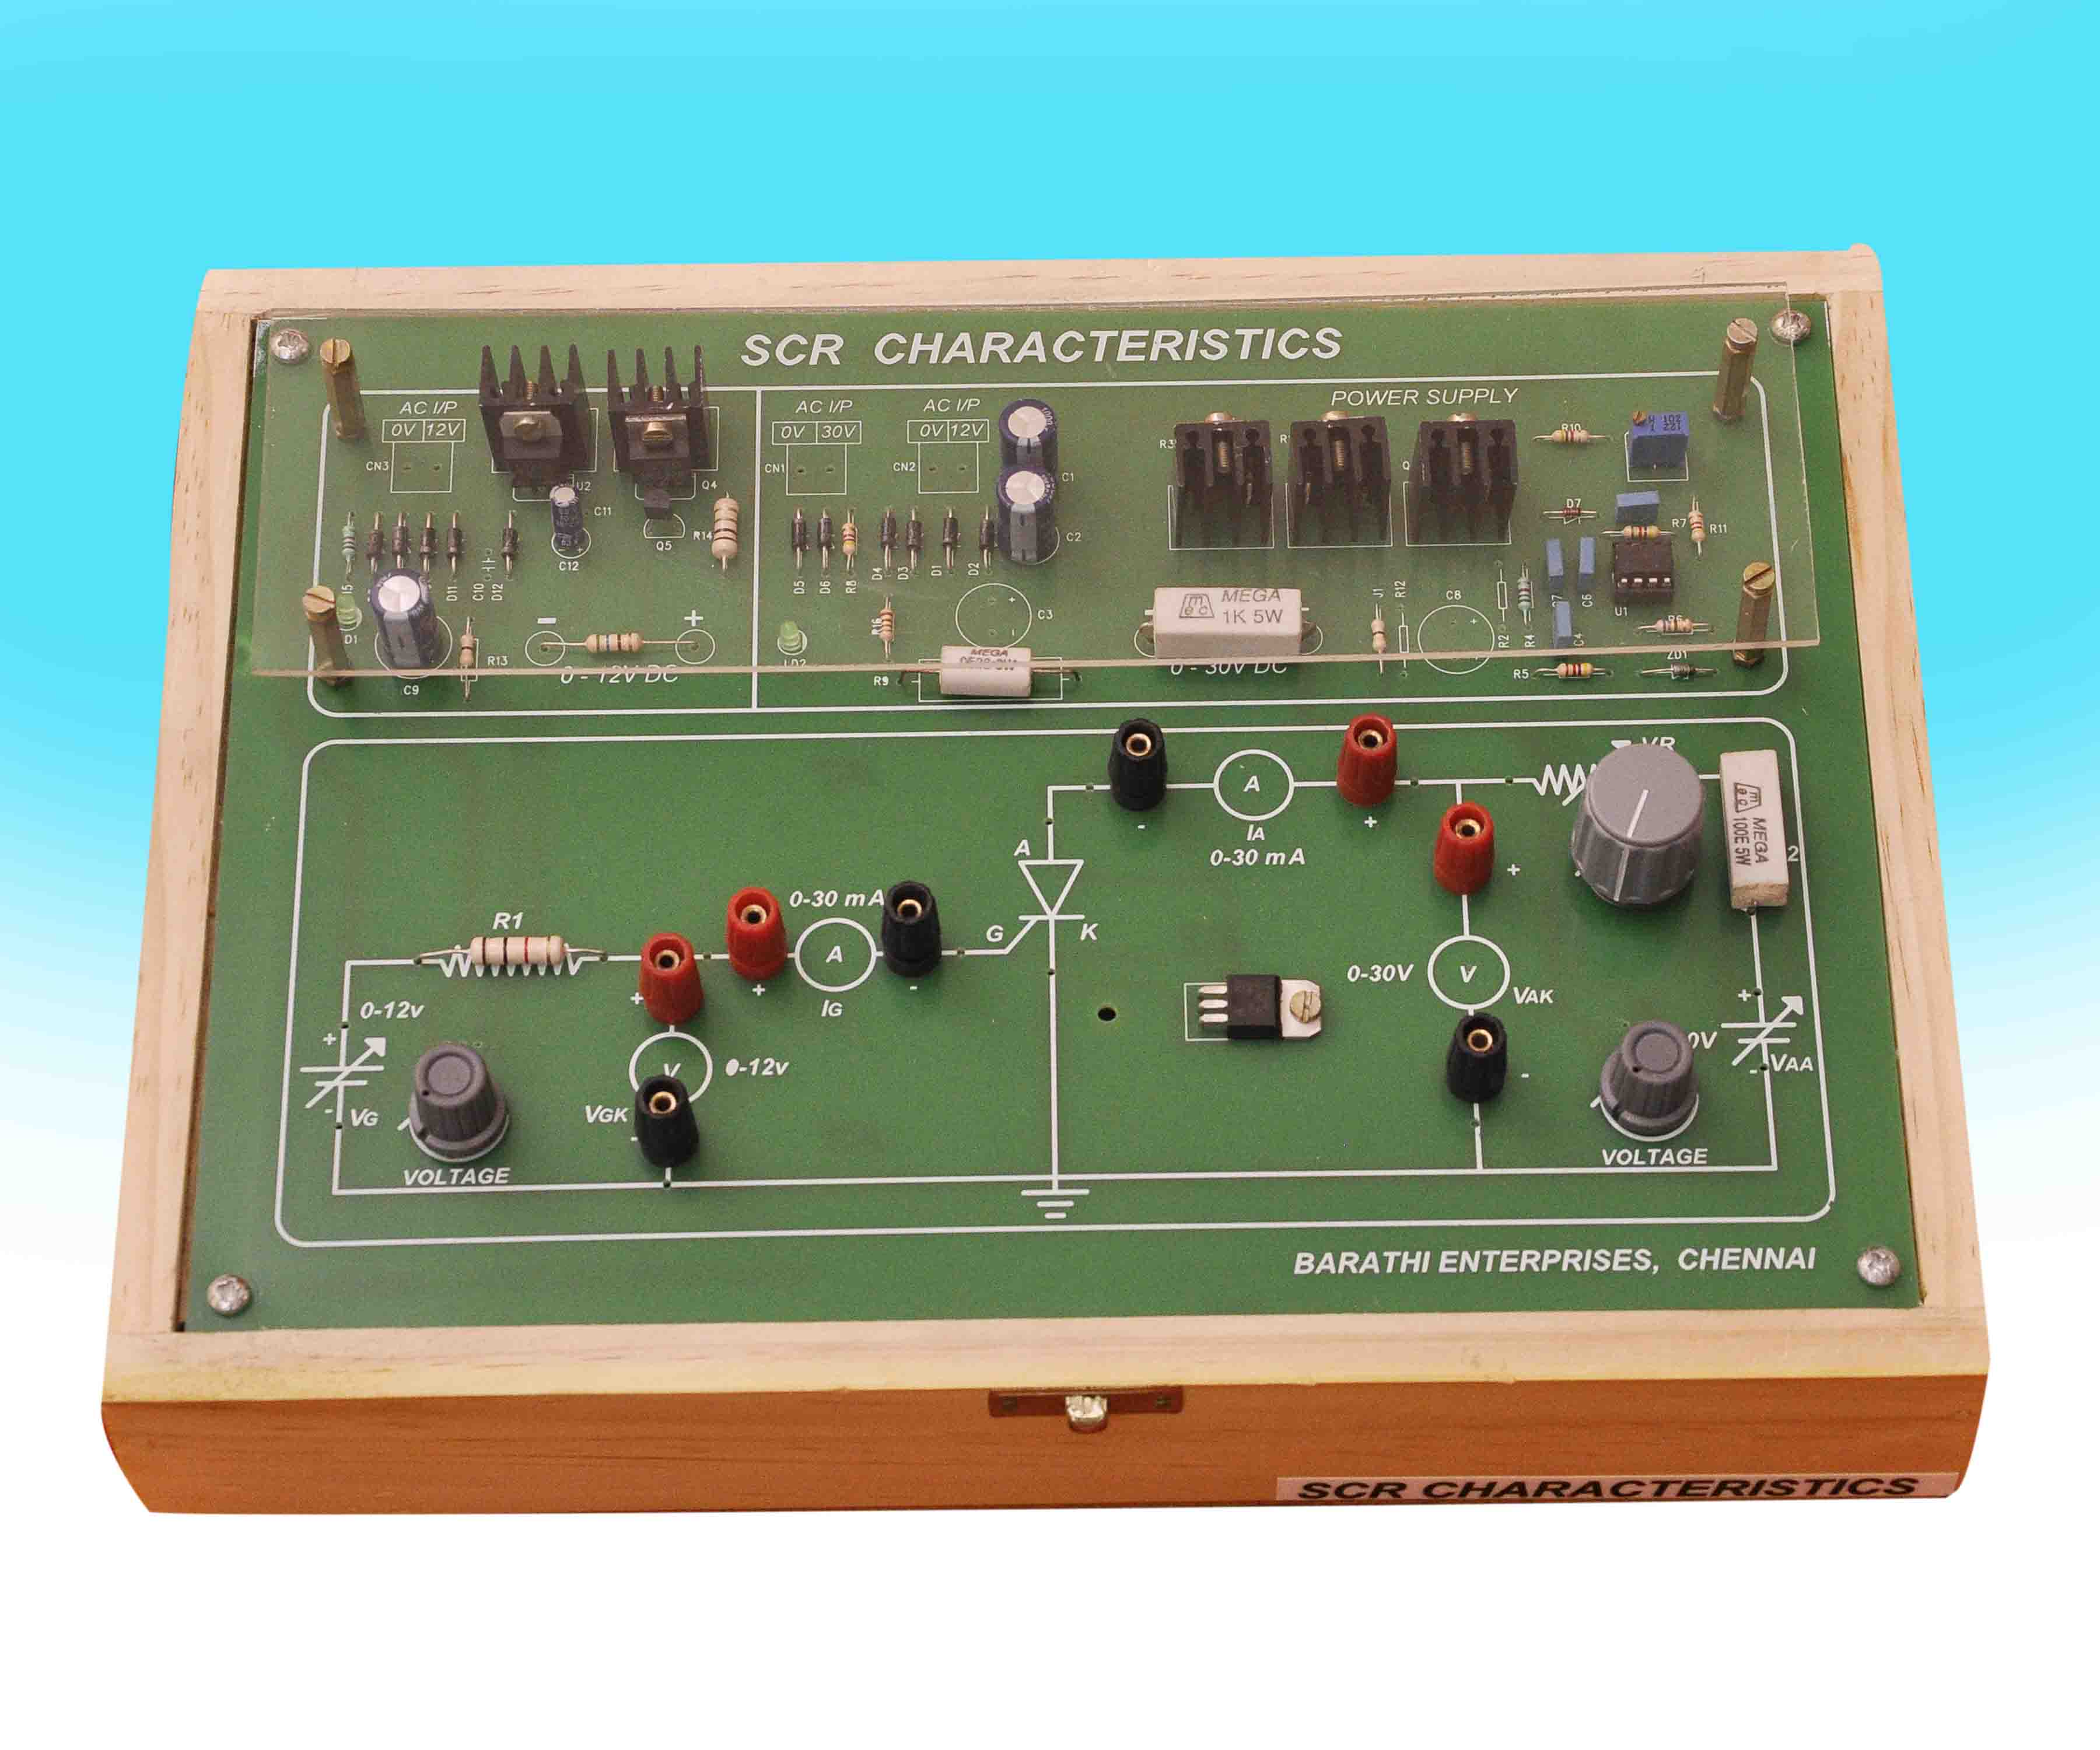 Barathi Enterprises Circuit Diagram Of Synchronized Mains Voltage Power Control Objective Built In 0 12v Supply